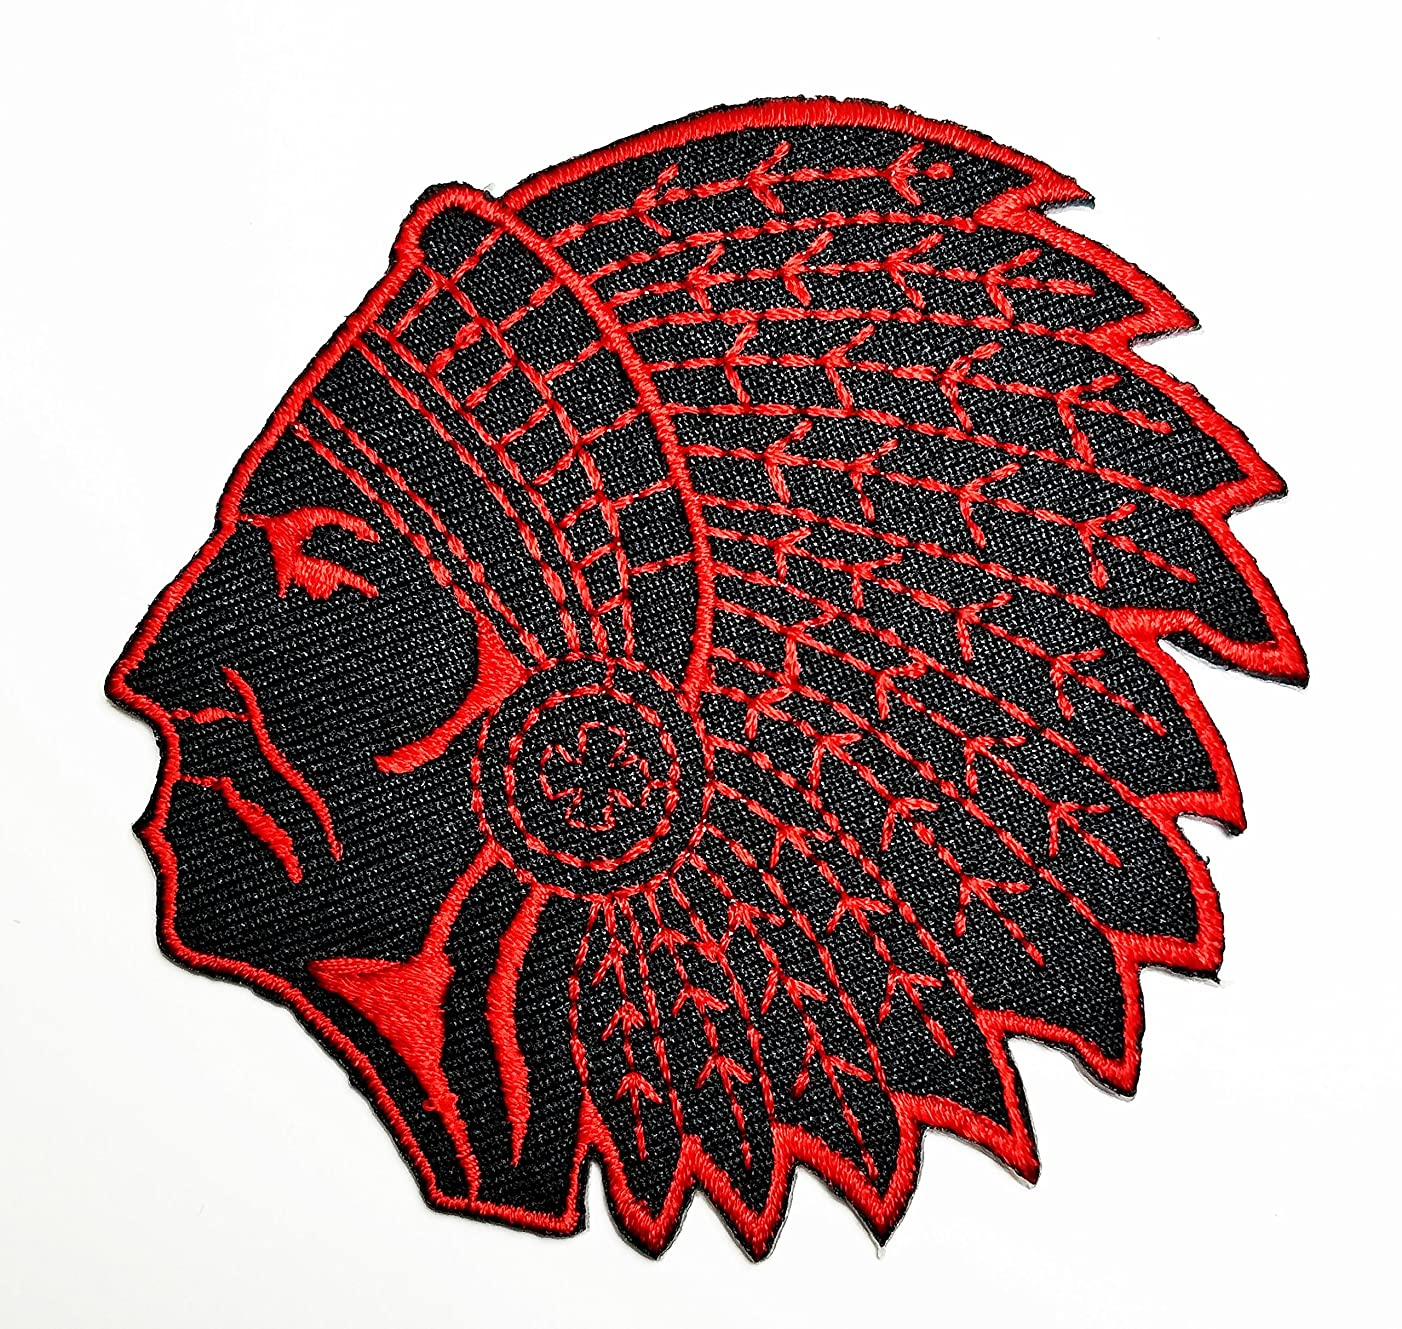 HHO Red Indian tribal chief (Black Red) Patch Embroidered DIY Patches, Cute Applique Sew Iron on Kids Craft Patch for Bags Jackets Jeans Clothes